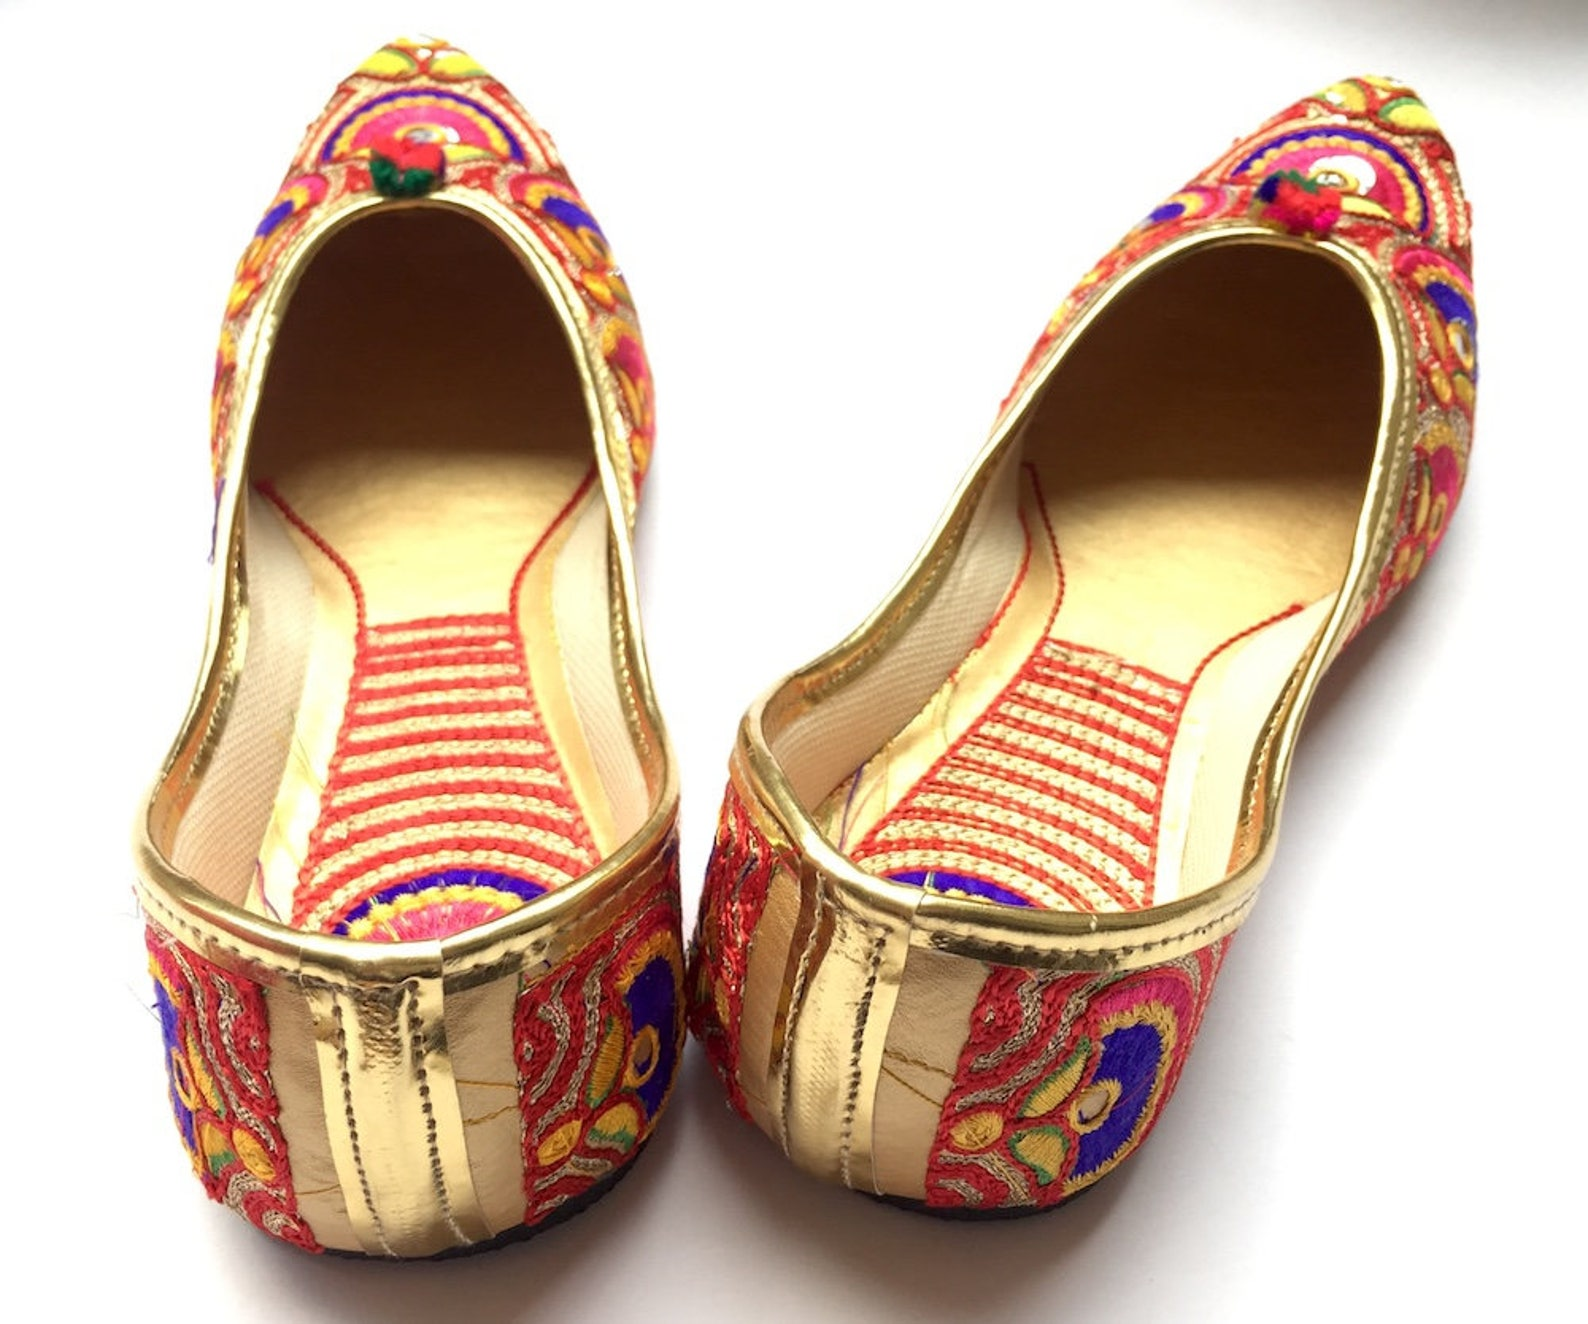 us size 8.5 - womens multi color paisley ballet flat shoes/boho shoes/slip on shoes/handmade indian designer women mojaris or ju